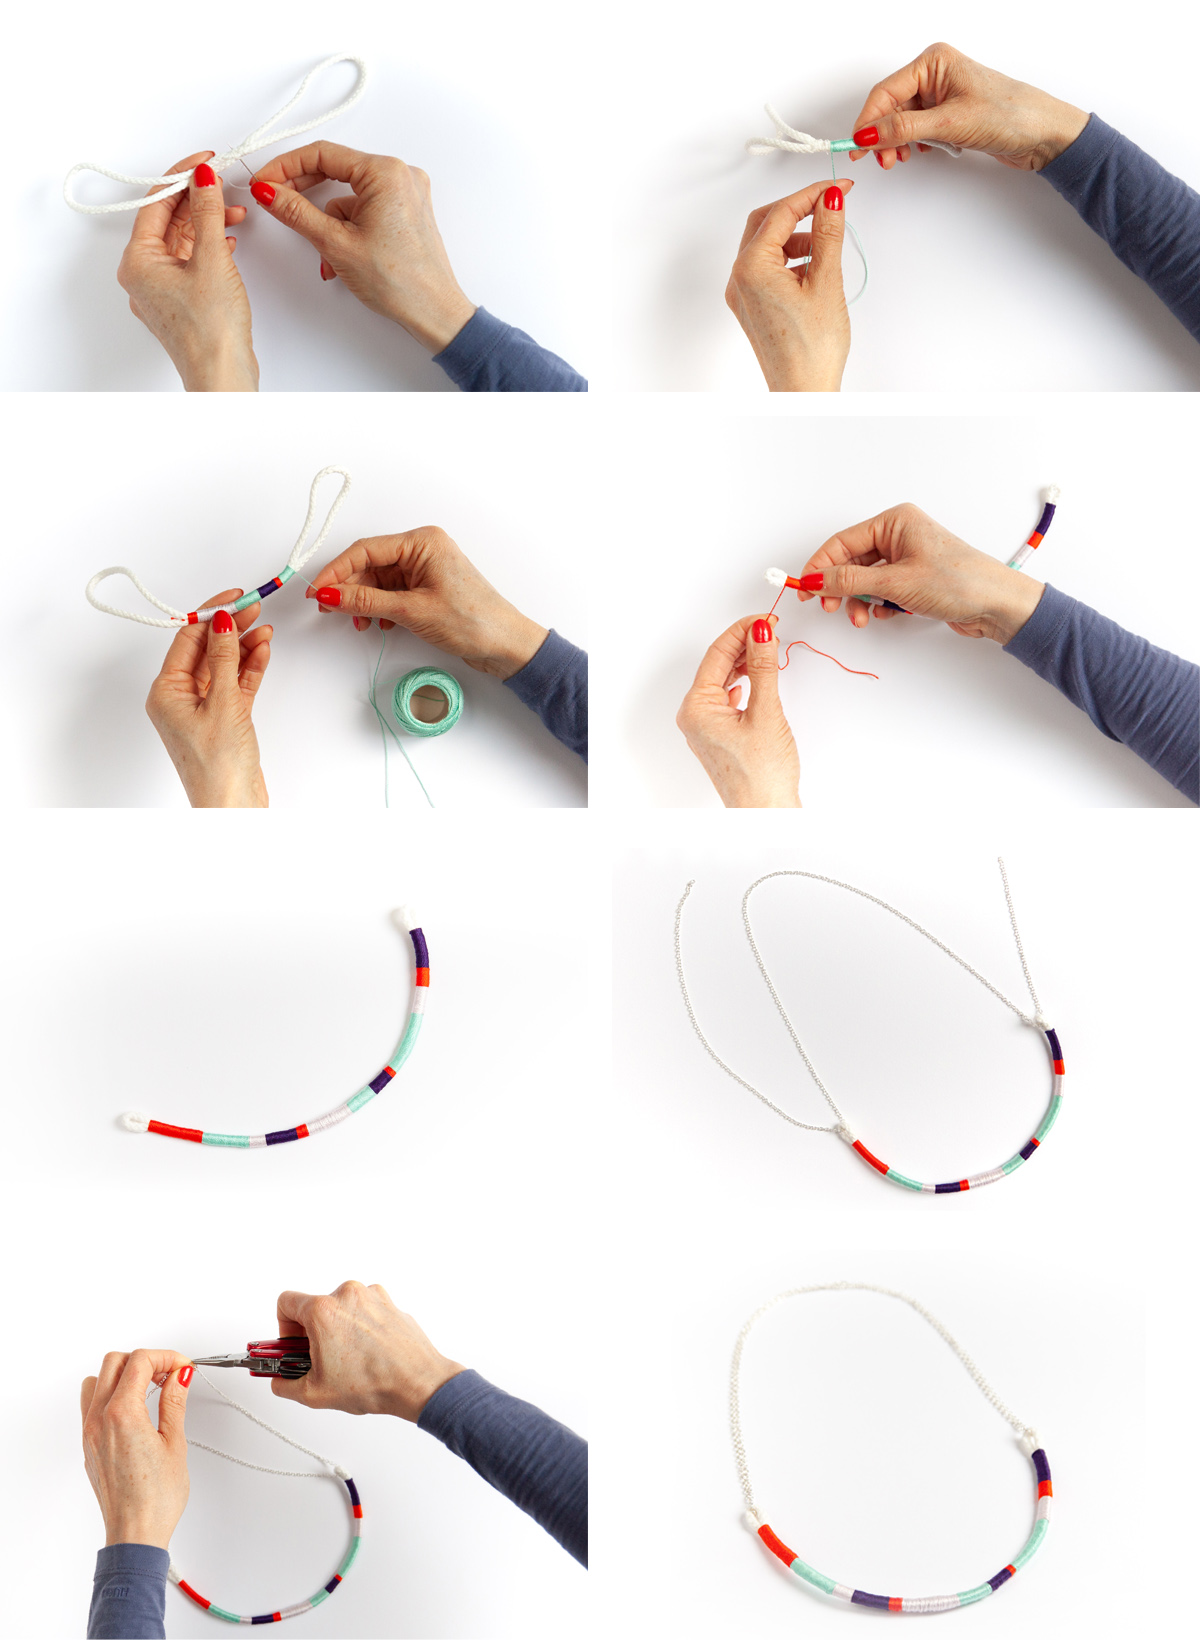 DIY Yarn Necklace - Simple tutorial for an impressive accessory. - www.yeswemadethis.com